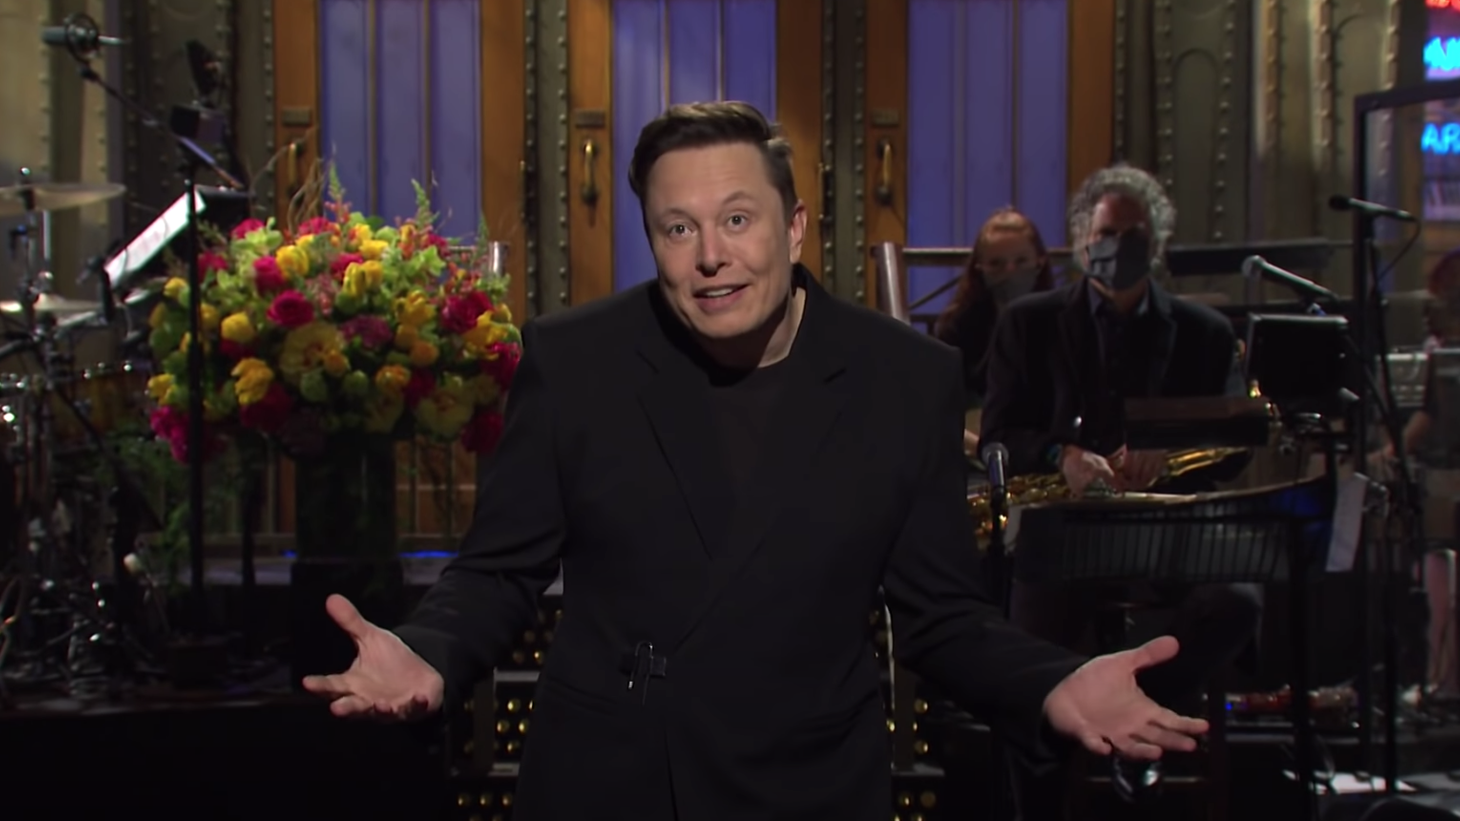 """During Elon Musk's opening monologue on """"Saturday Night Live,"""" he mentioned that he's the first person with Asperger's to host the program."""